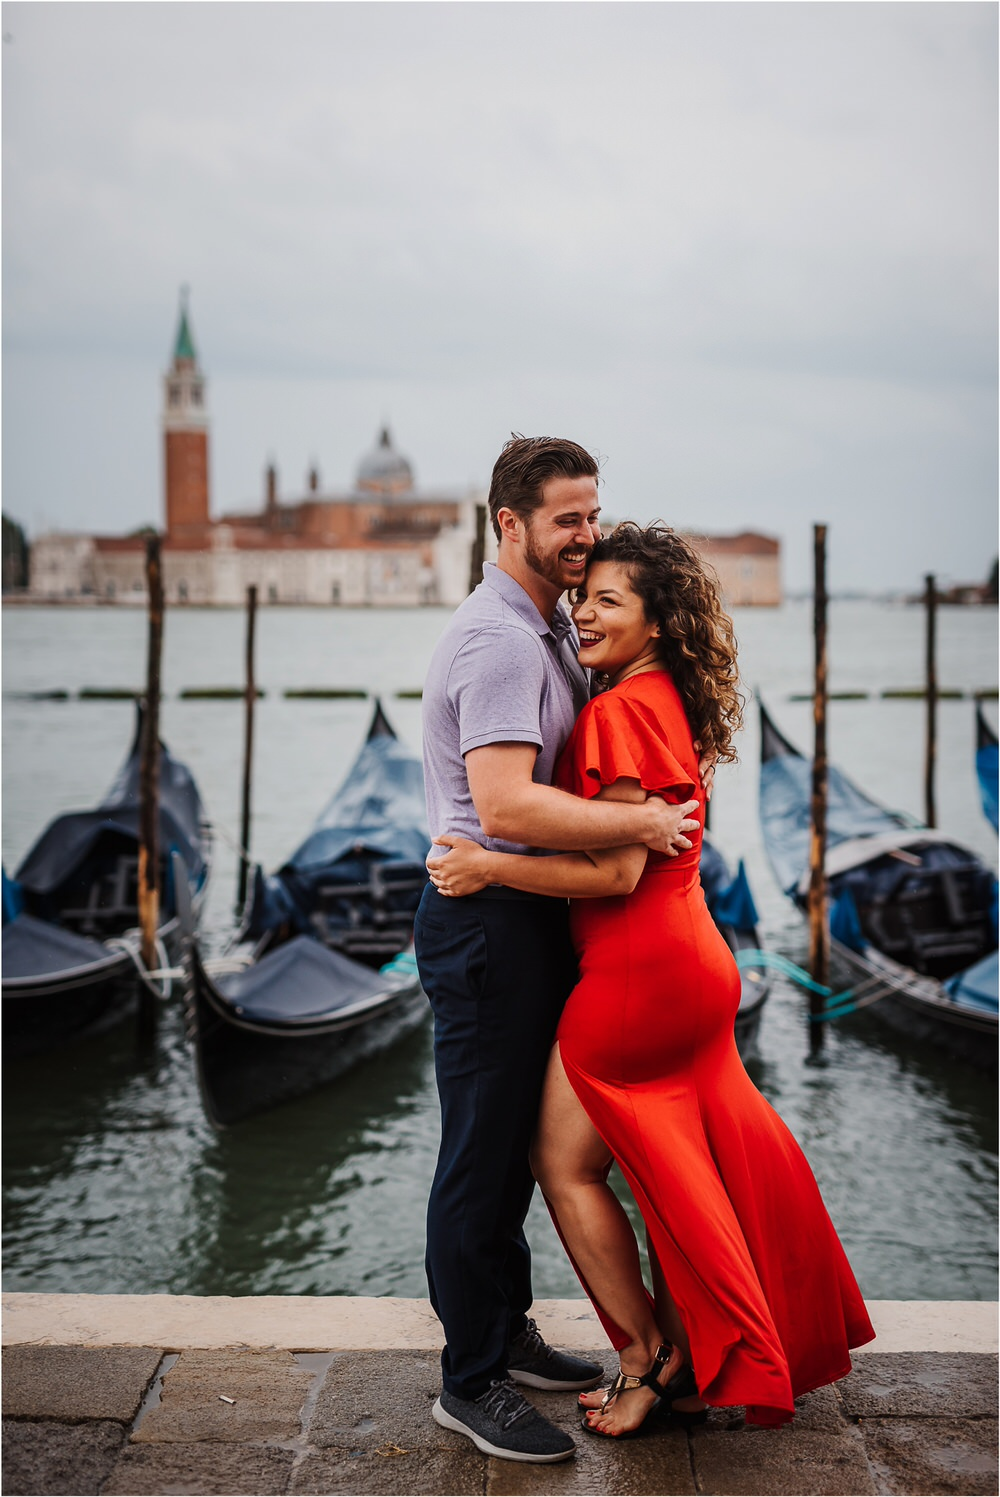 venezia venice wedding photographer photography real honest moody lookslikefilm italy italia matrimonio amore photography fotograf 0038.jpg